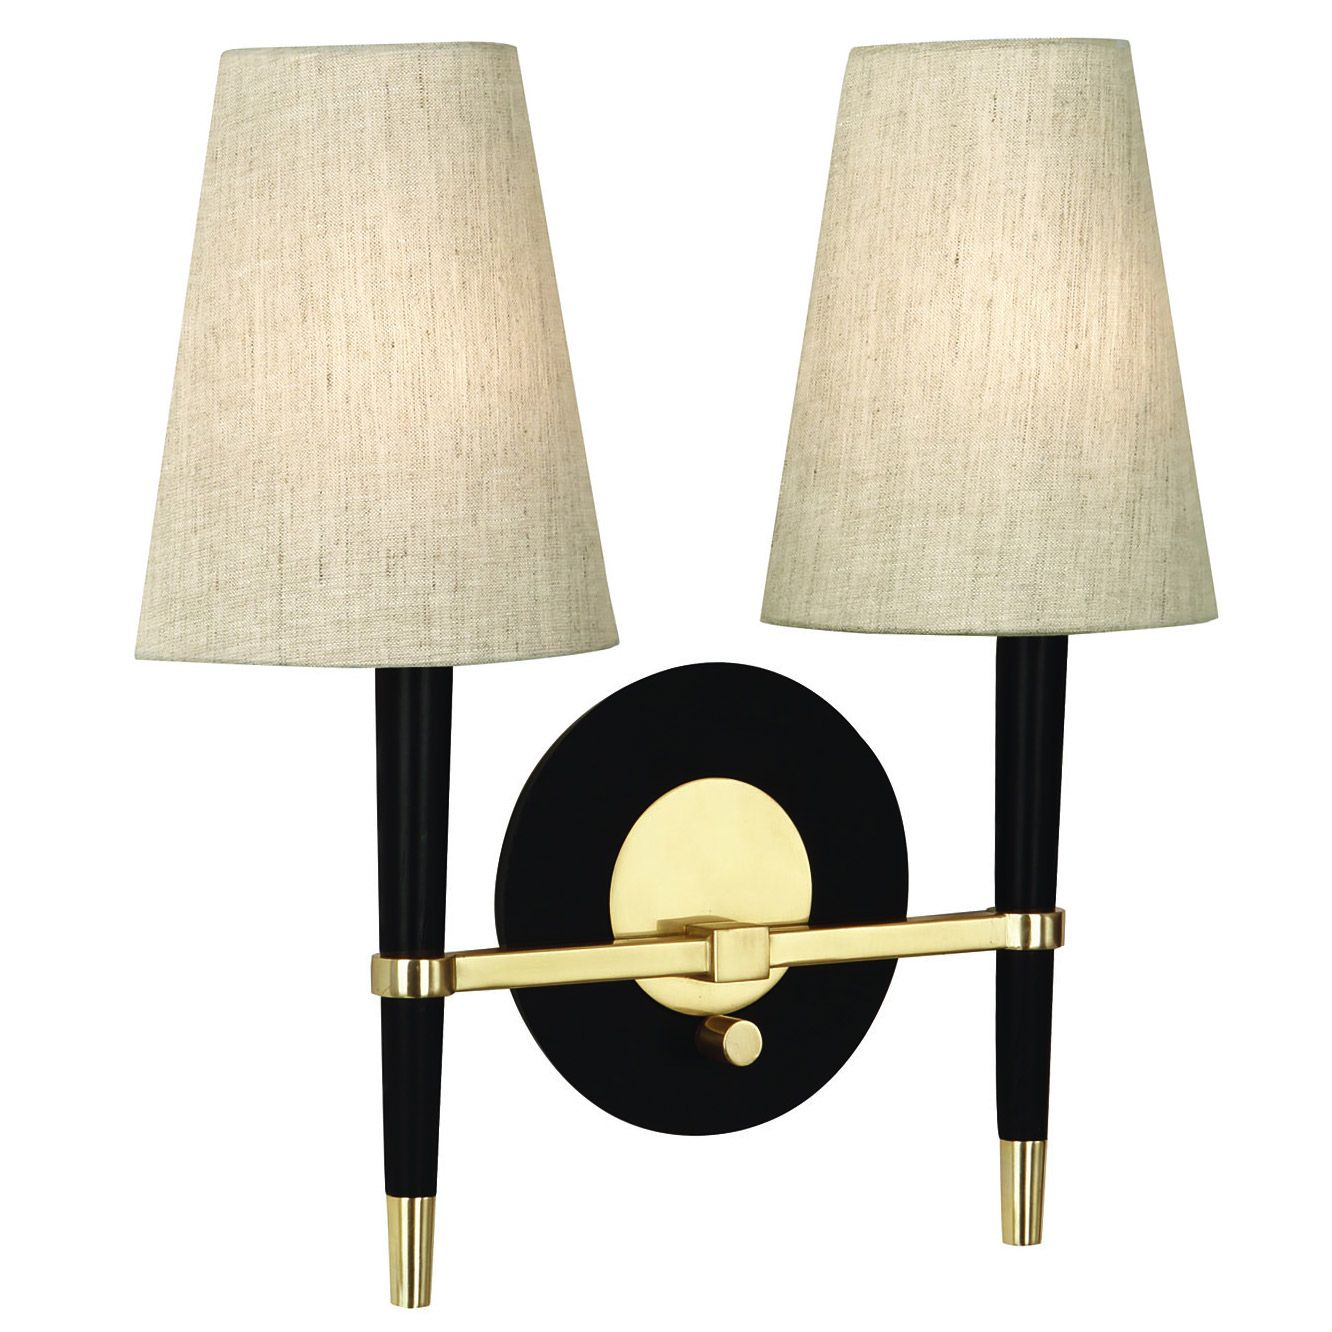 Ventana half shades wall light by jonathan adler ra pn772 information robert abbey jonathan adler ventana half shade wall sconce features the ventana wall sconce from robert abbey features modern aesthetics with amipublicfo Images